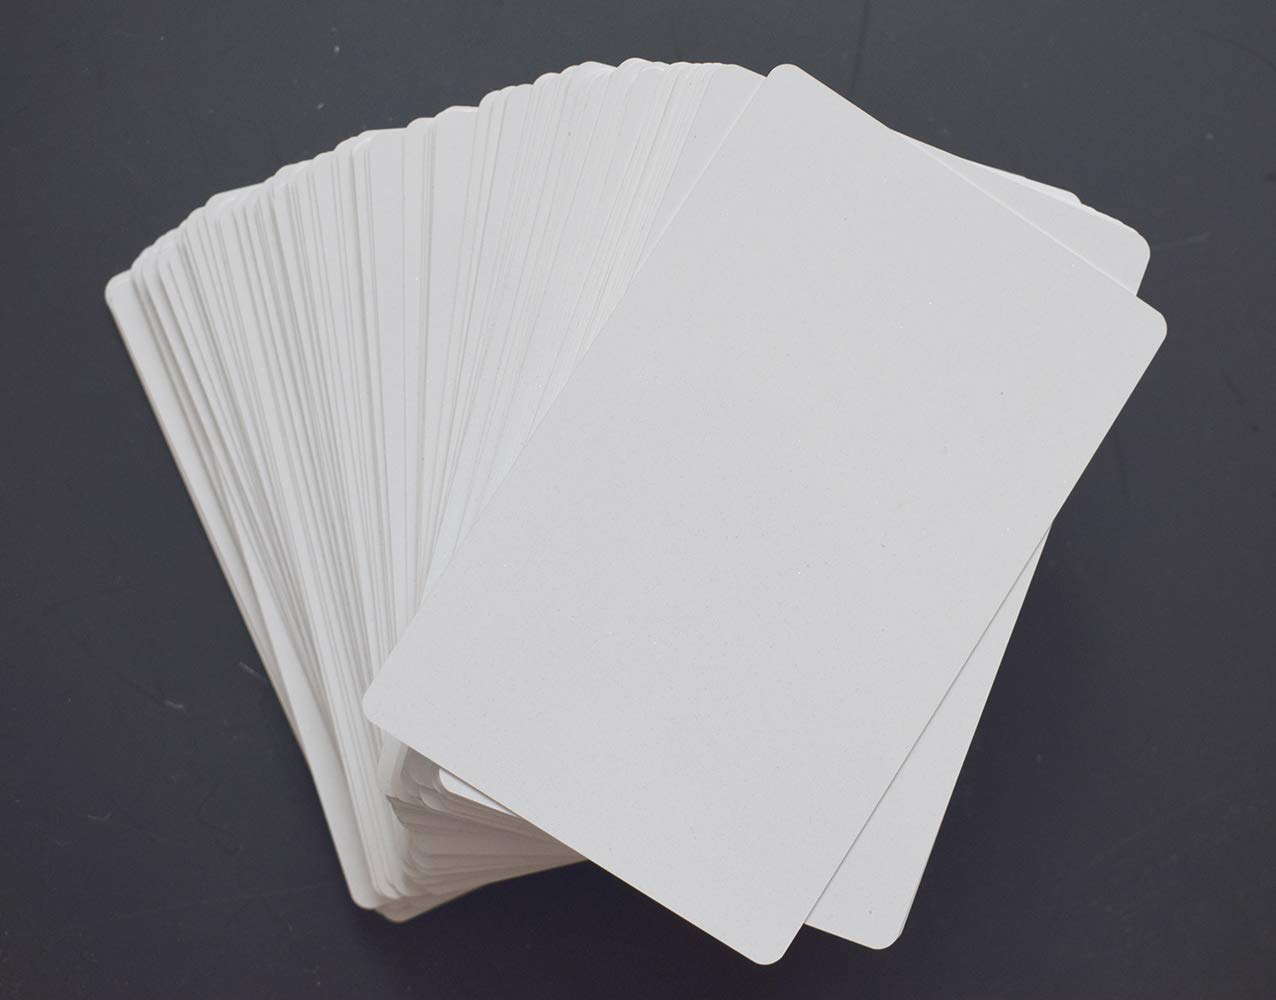 100pcs Sublimation Metal Business Cards Laser Engraved Metal Business Cards Sublimation Blanks 3.4x2.1in Thicknes (0.30mm) (White) by world-paper (Image #2)